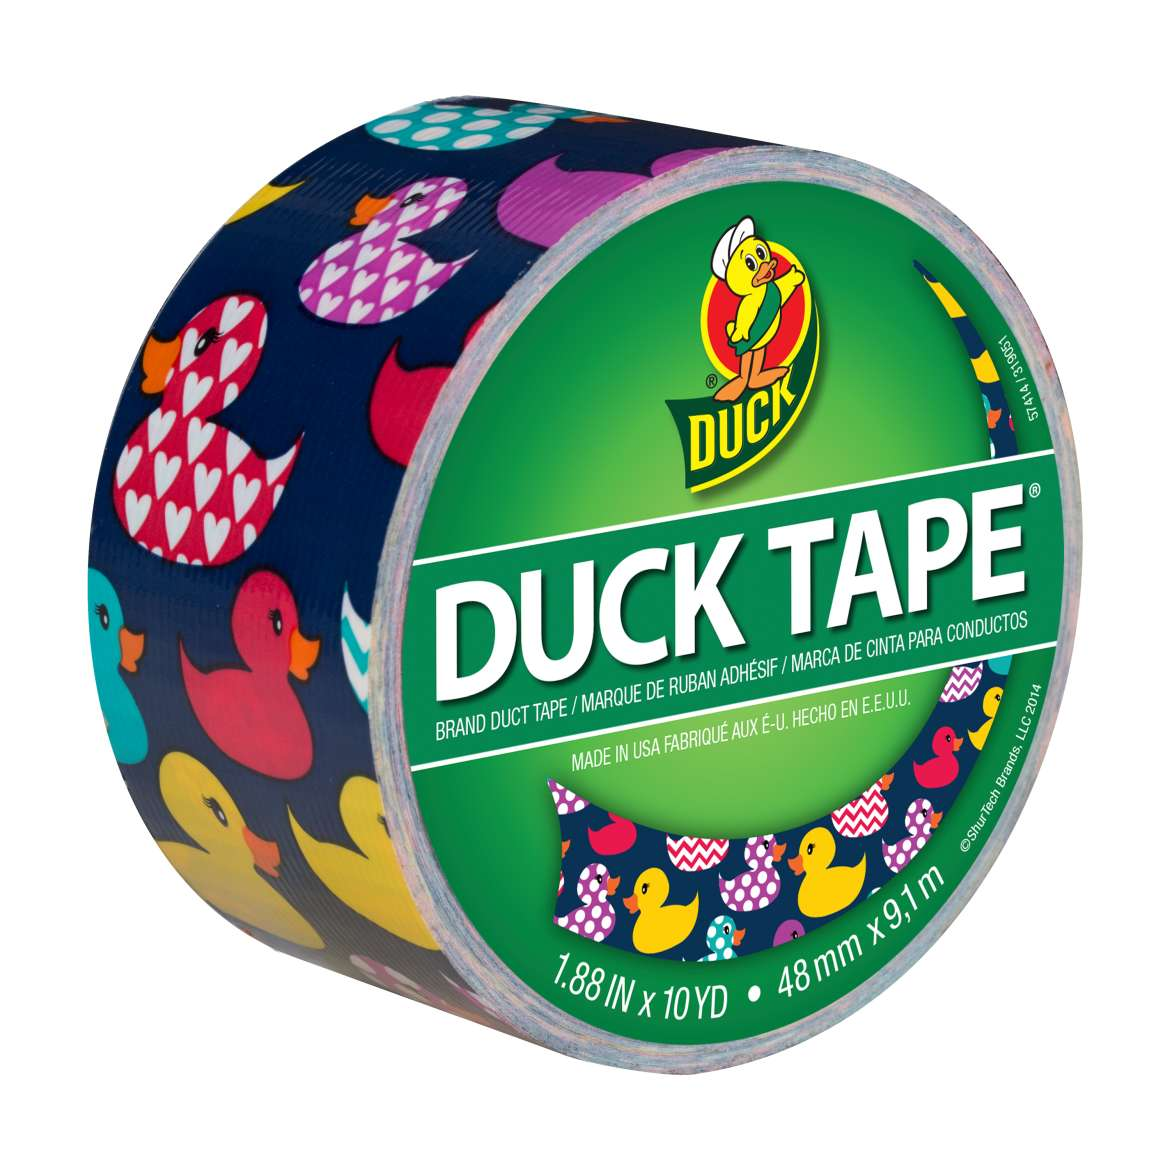 Printed Duck Tape® Brand Duct Tape - Rubber Duck, 1.88 in. x 10 yd. Image